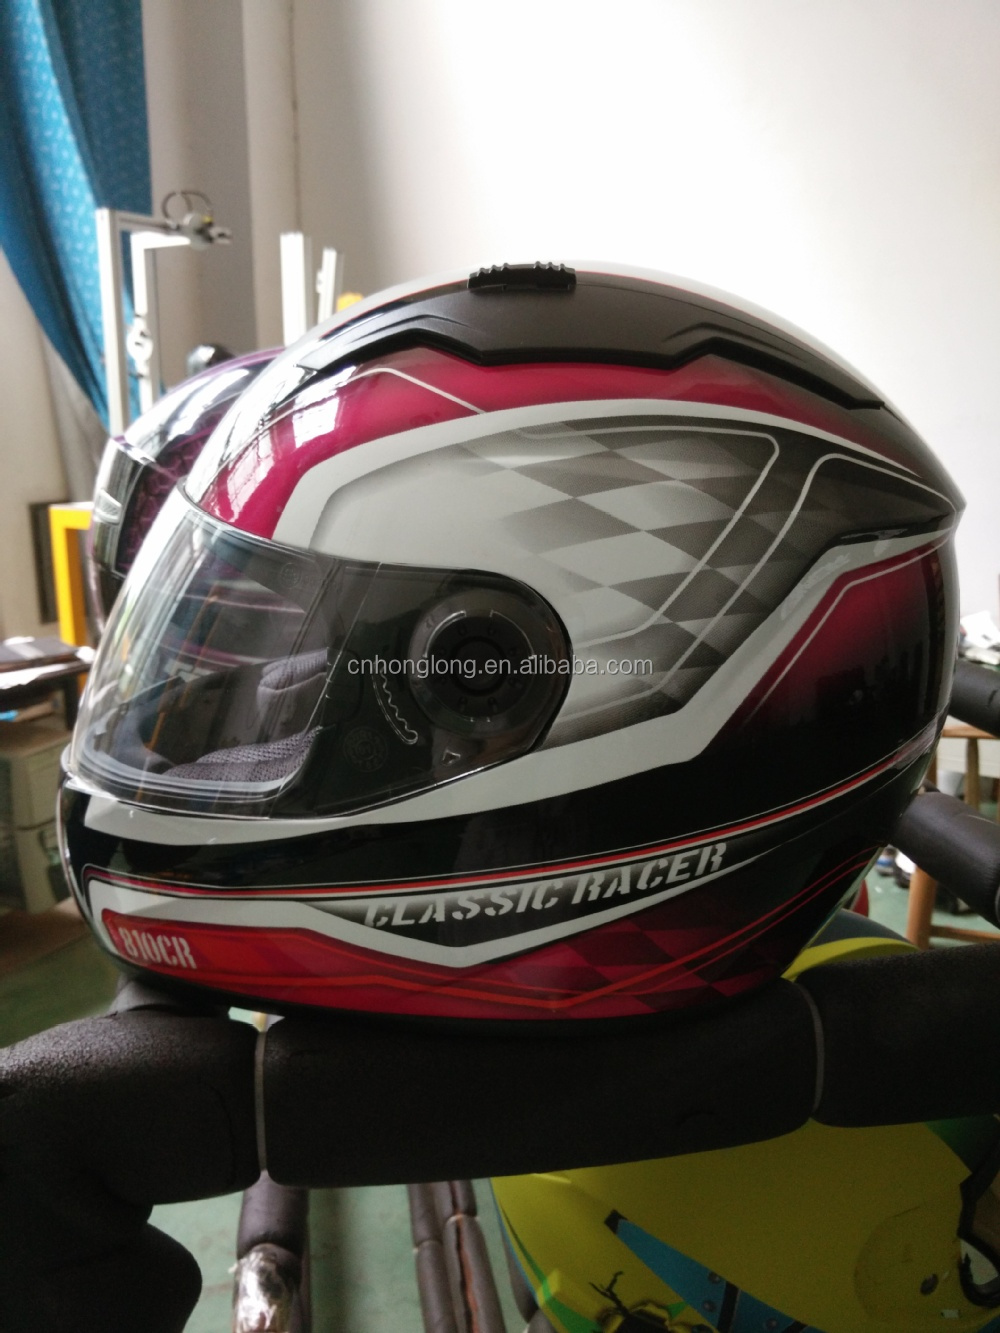 Motorcross helmet for Full face,Adults helmet for Safety Protection,good quality,Useful helmet